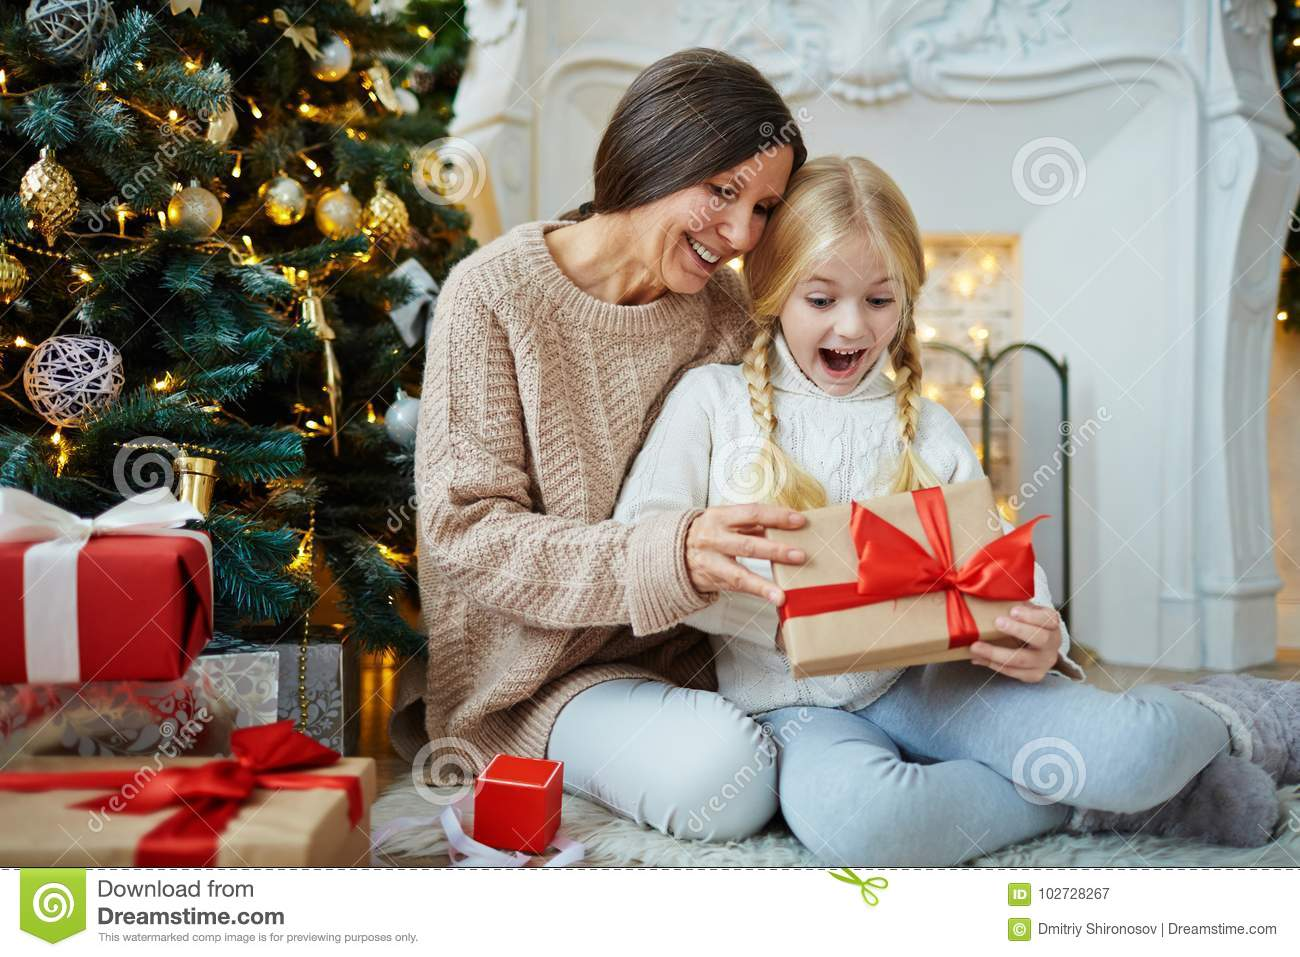 Surprise xmas gifts for her